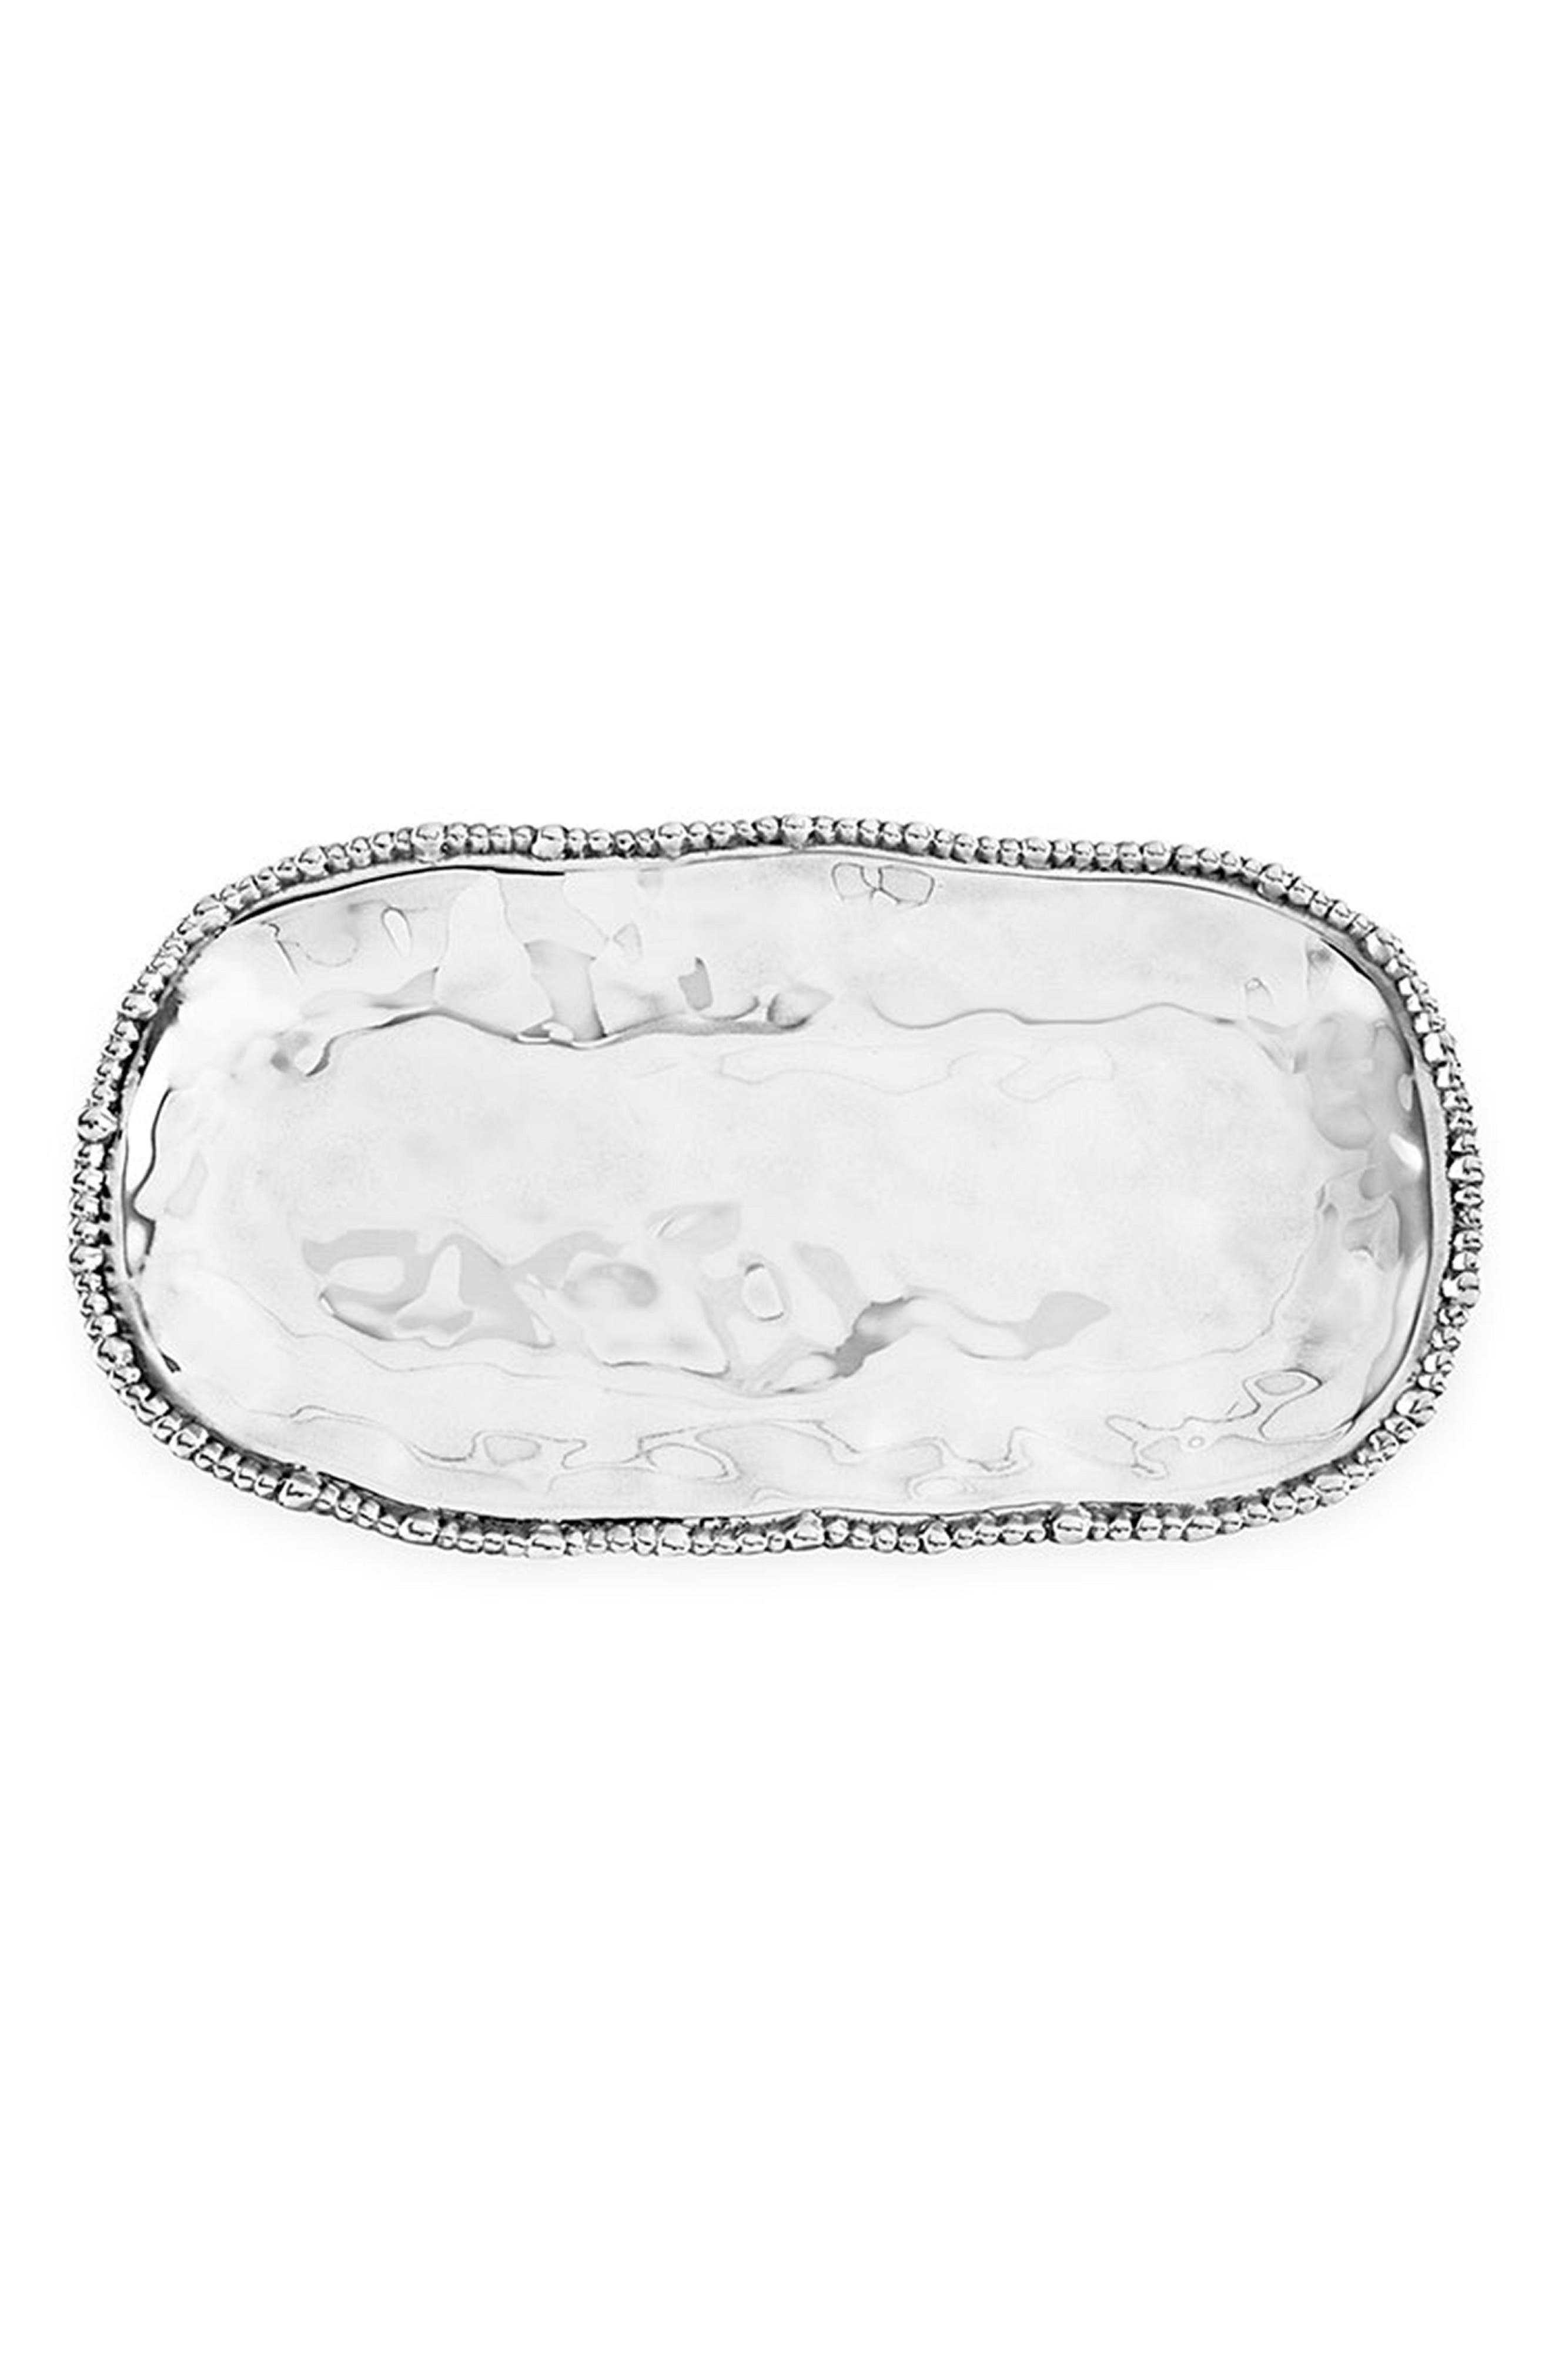 BEATRIZ BALL COLLECTION Organic Pearl Nova Oval Serving Platter, Main, color, SILVER